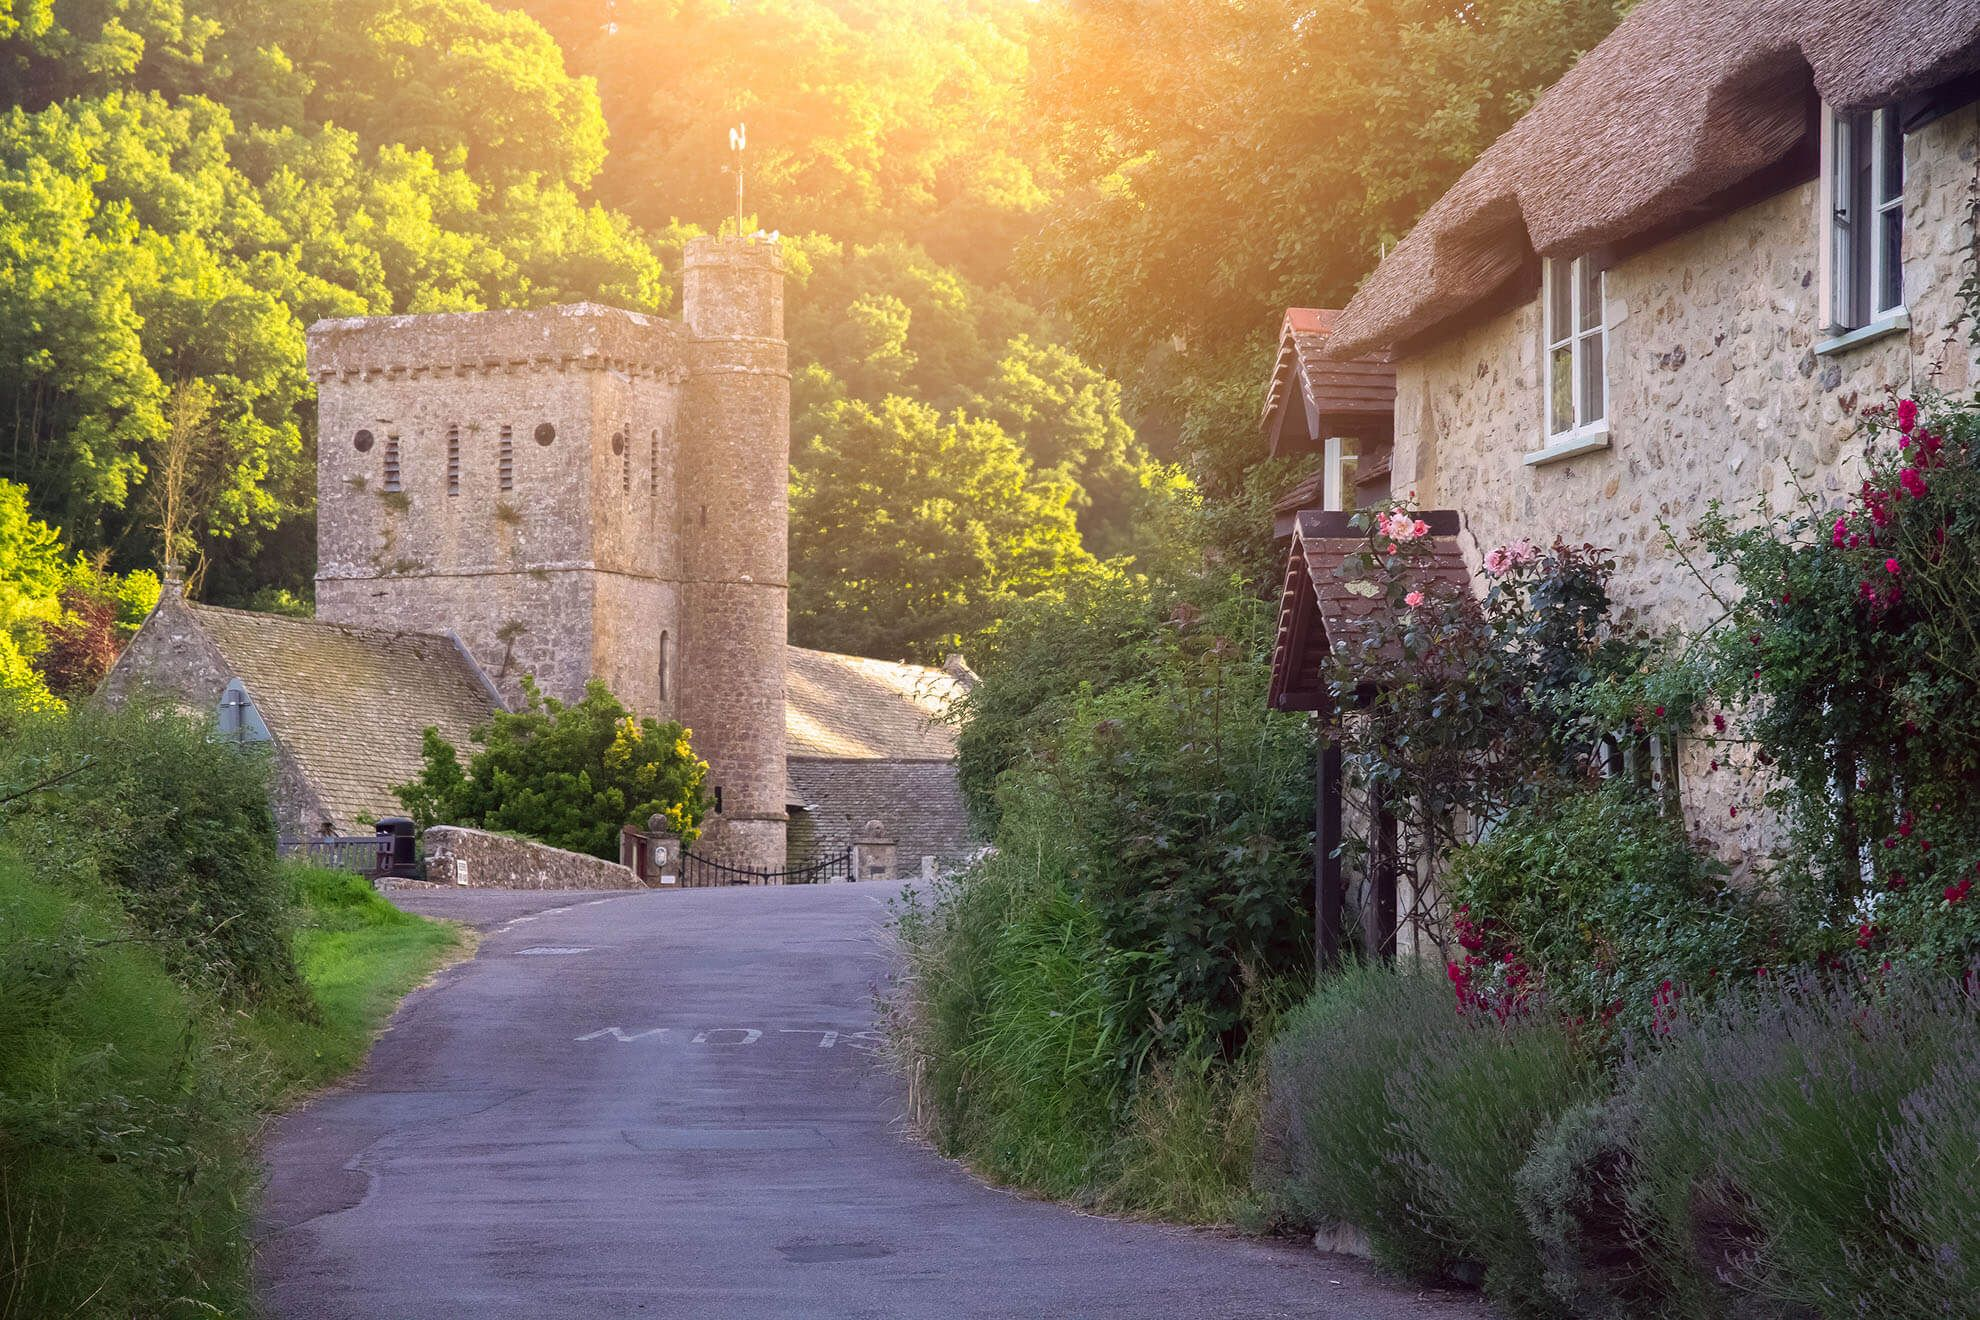 Branscombe is one of Britain's most picturesque villages